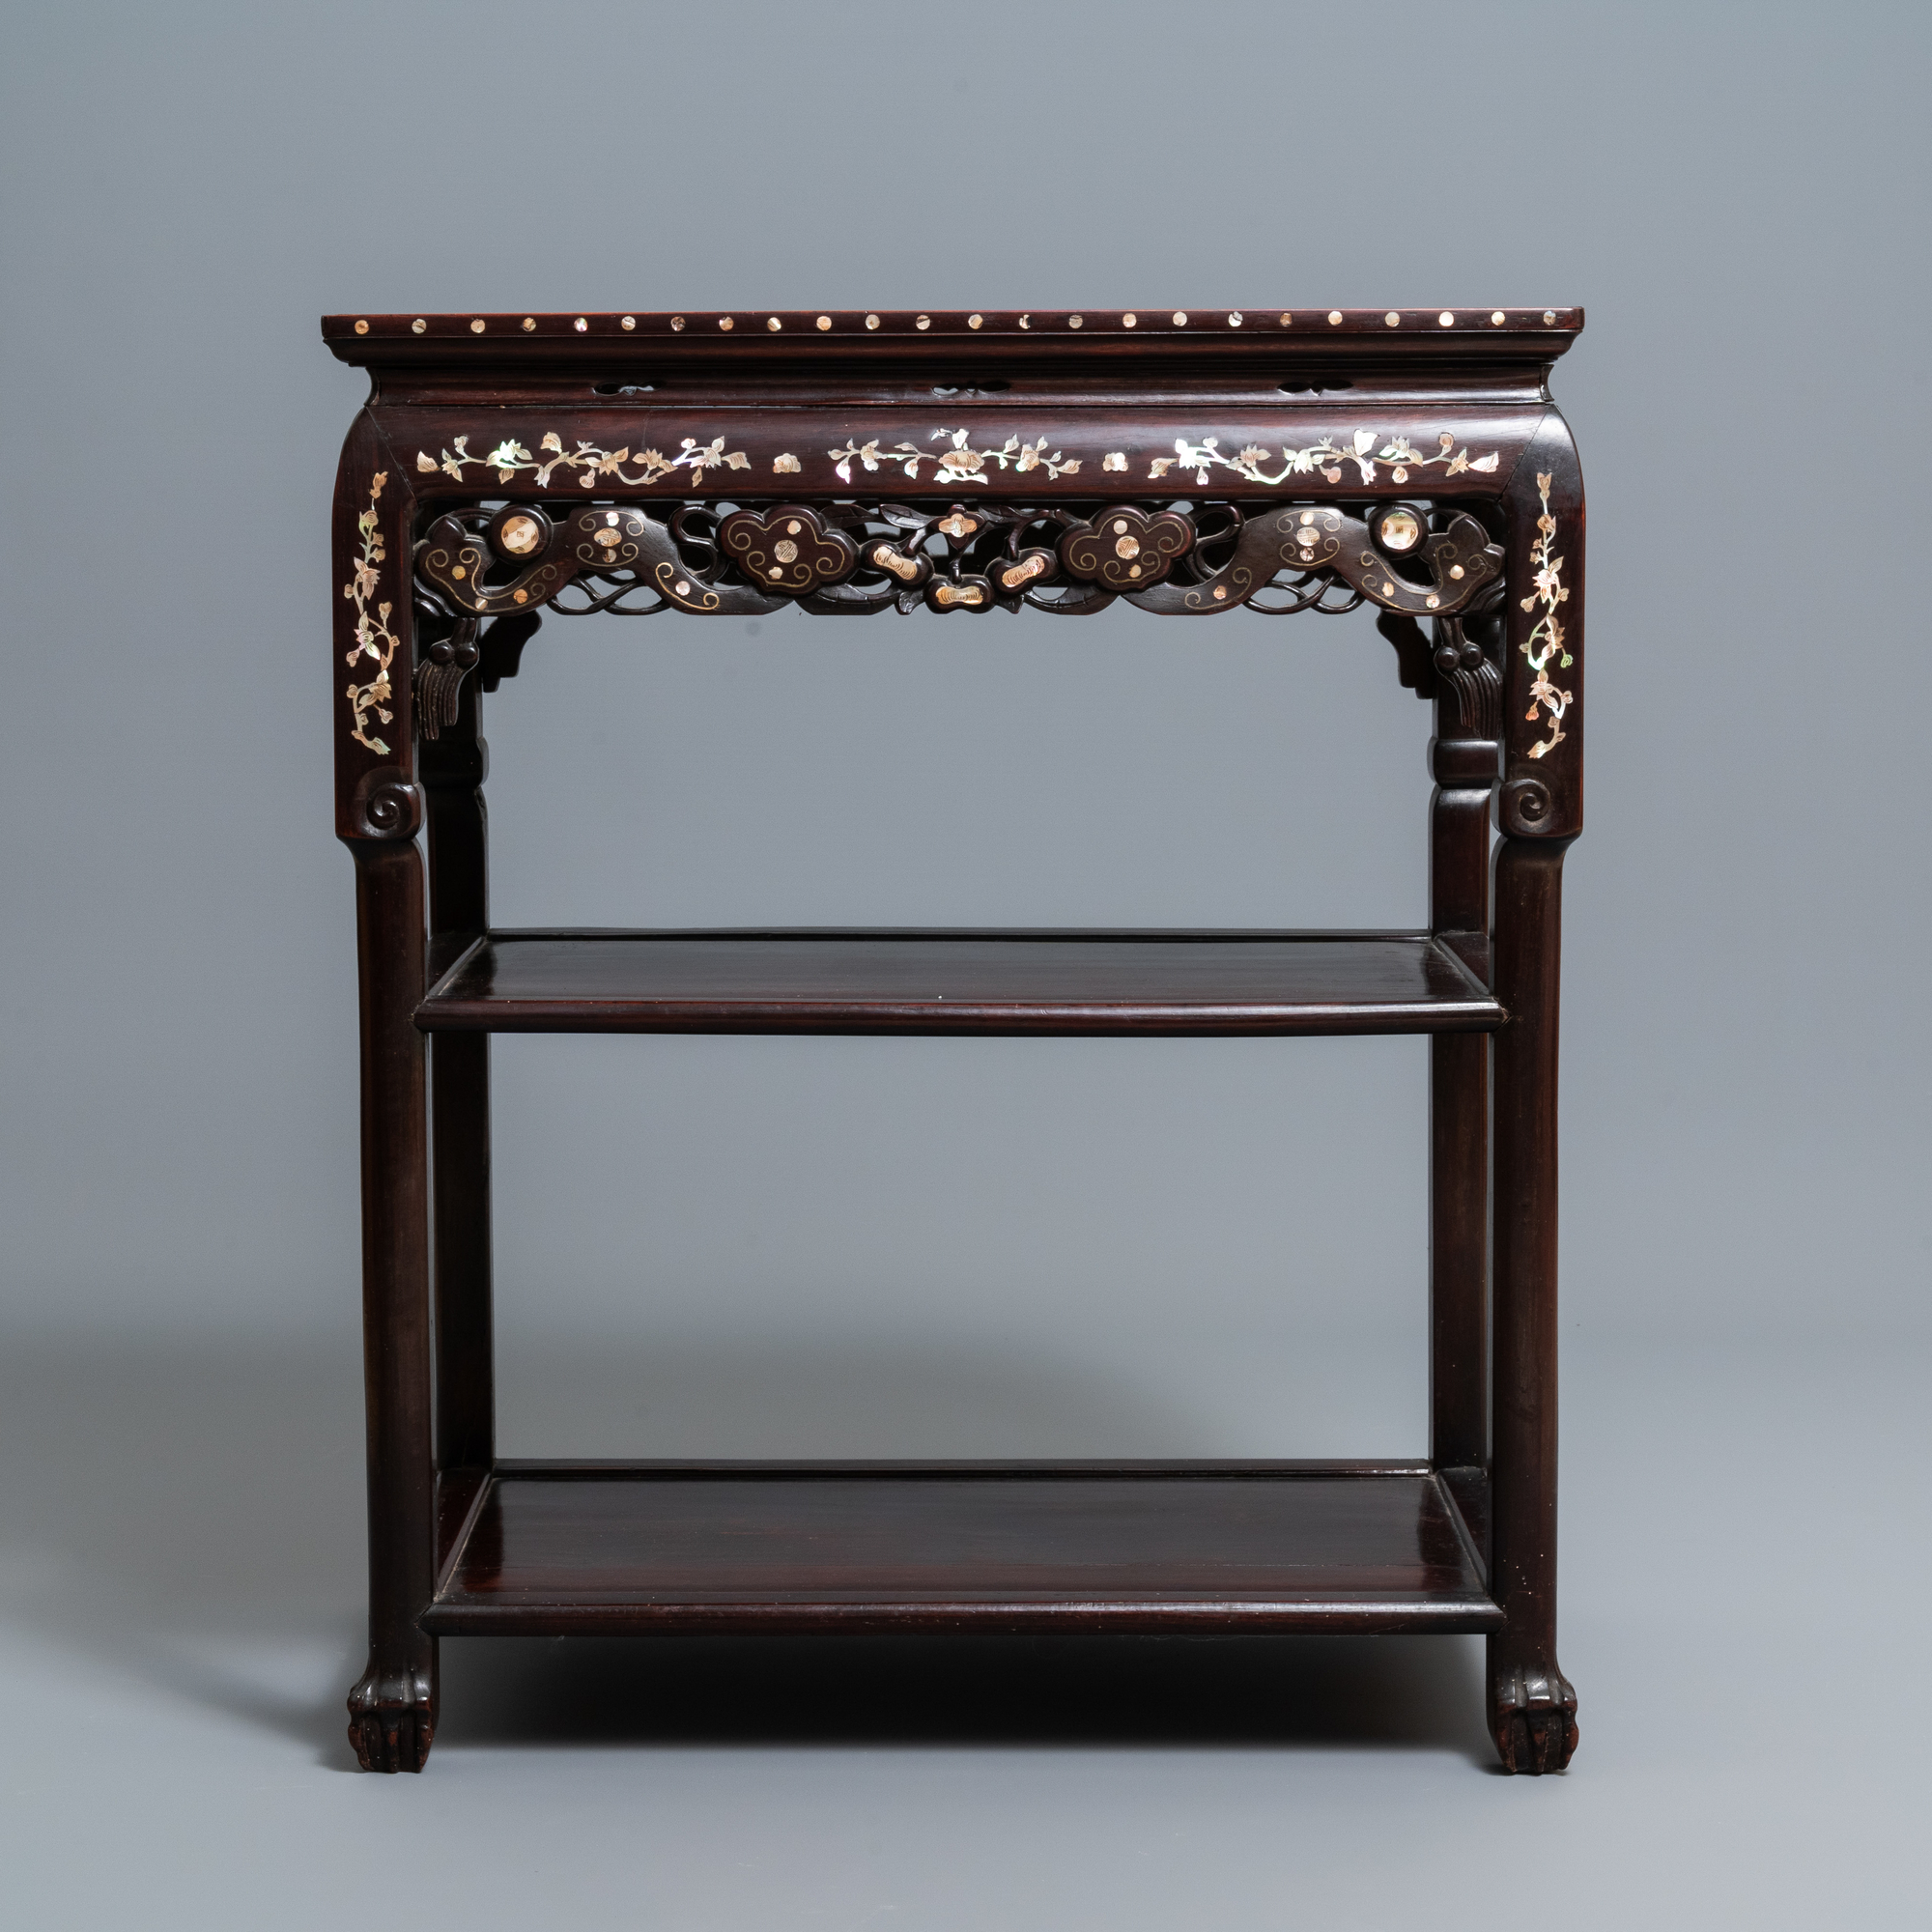 A Chinese mother-of-pearl-inlaid wooden sideboard with marble top, 19th C. - Image 2 of 10